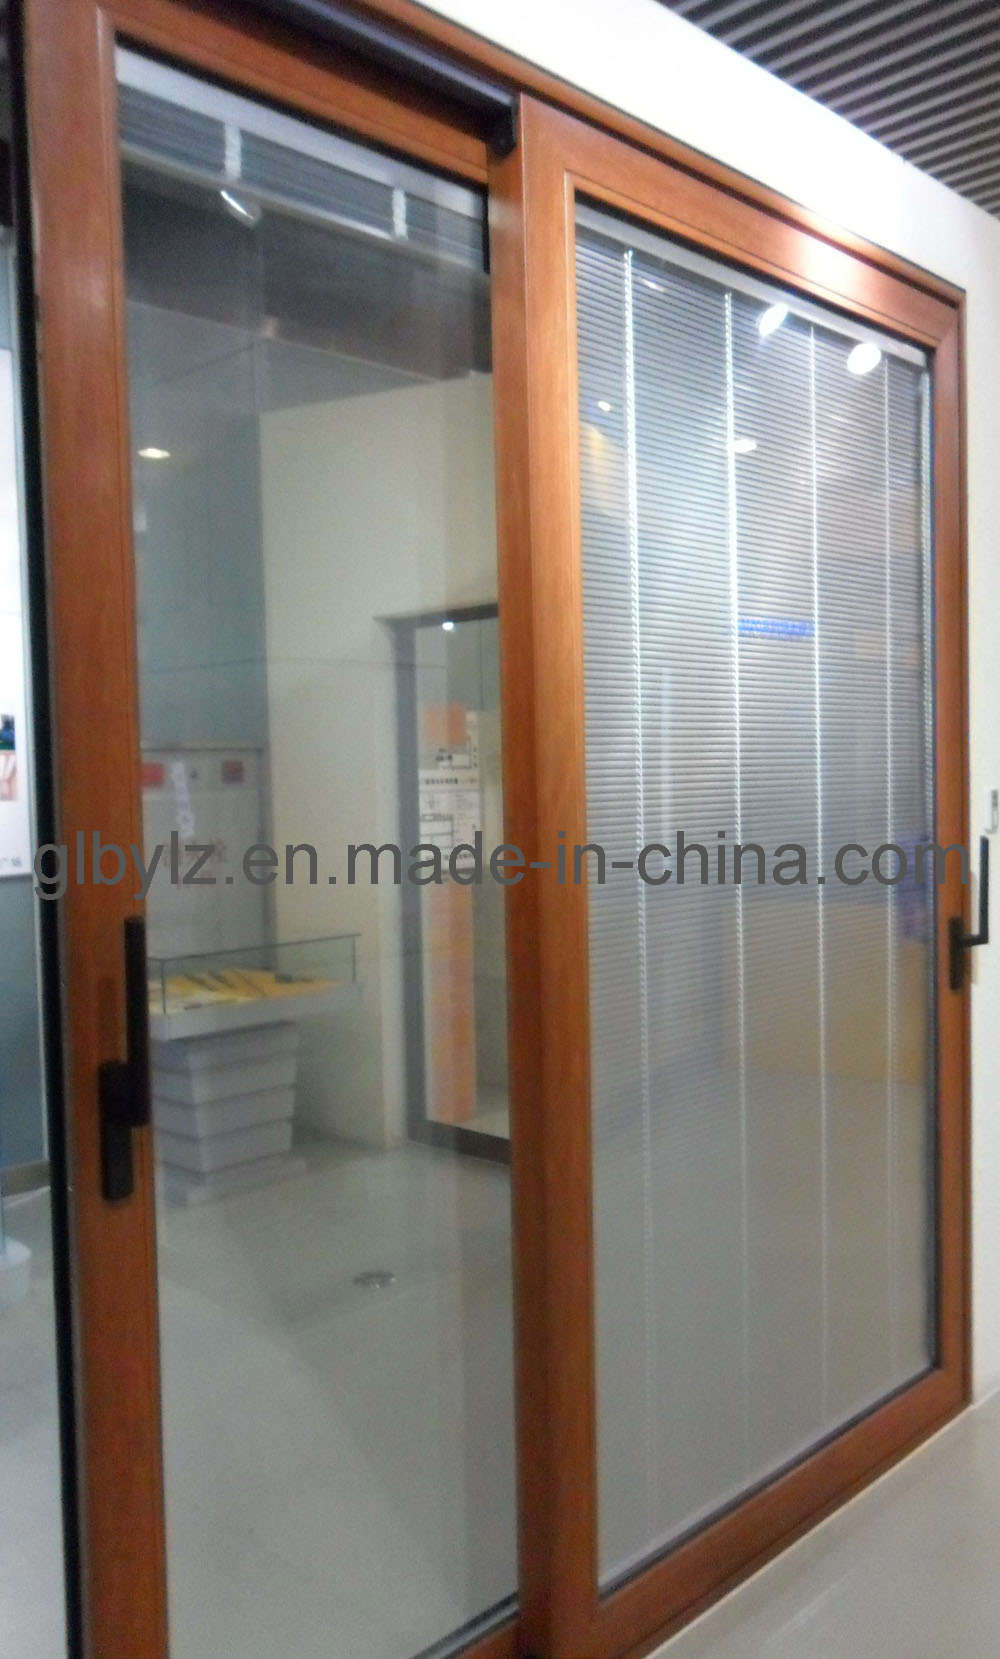 China aluminum wood sliding door lm150 china aluminum for Sliding door manufacturers